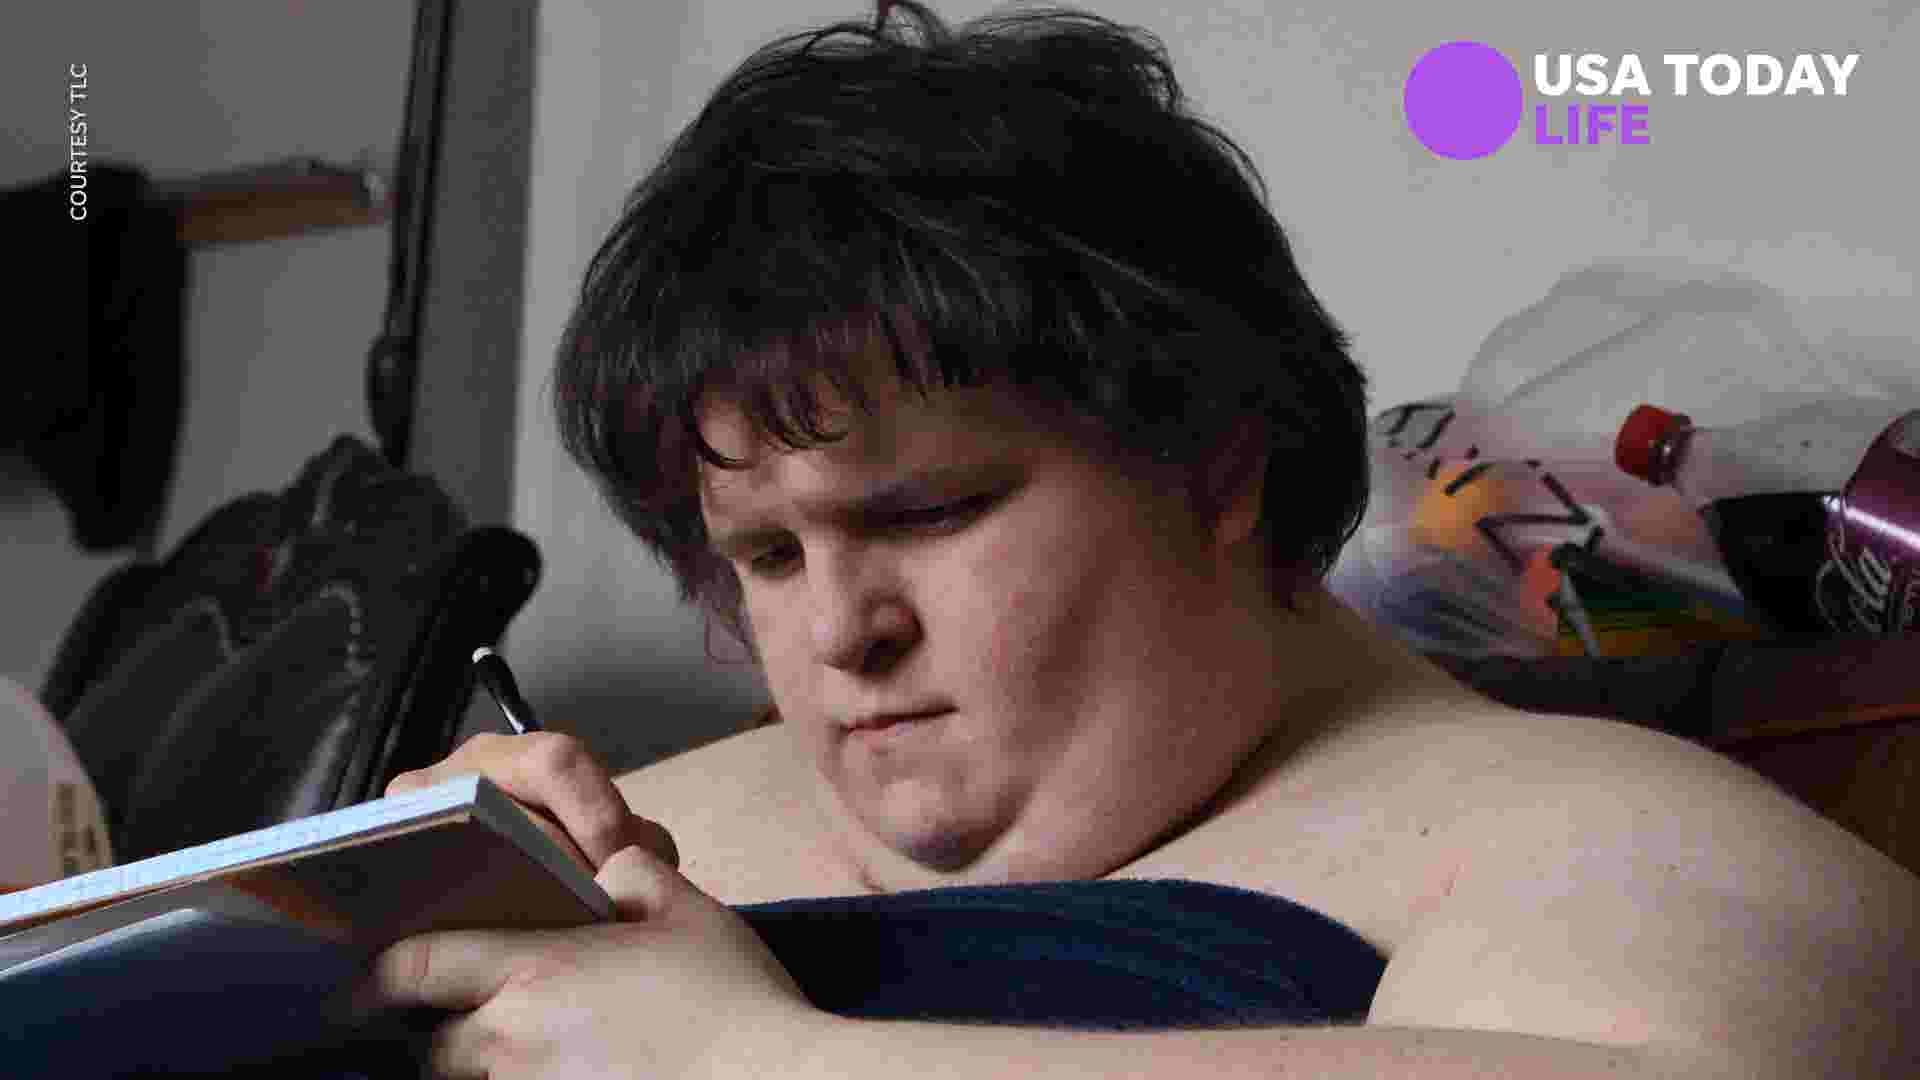 My 600 Lb Life Star Sean Milliken Dies At 29